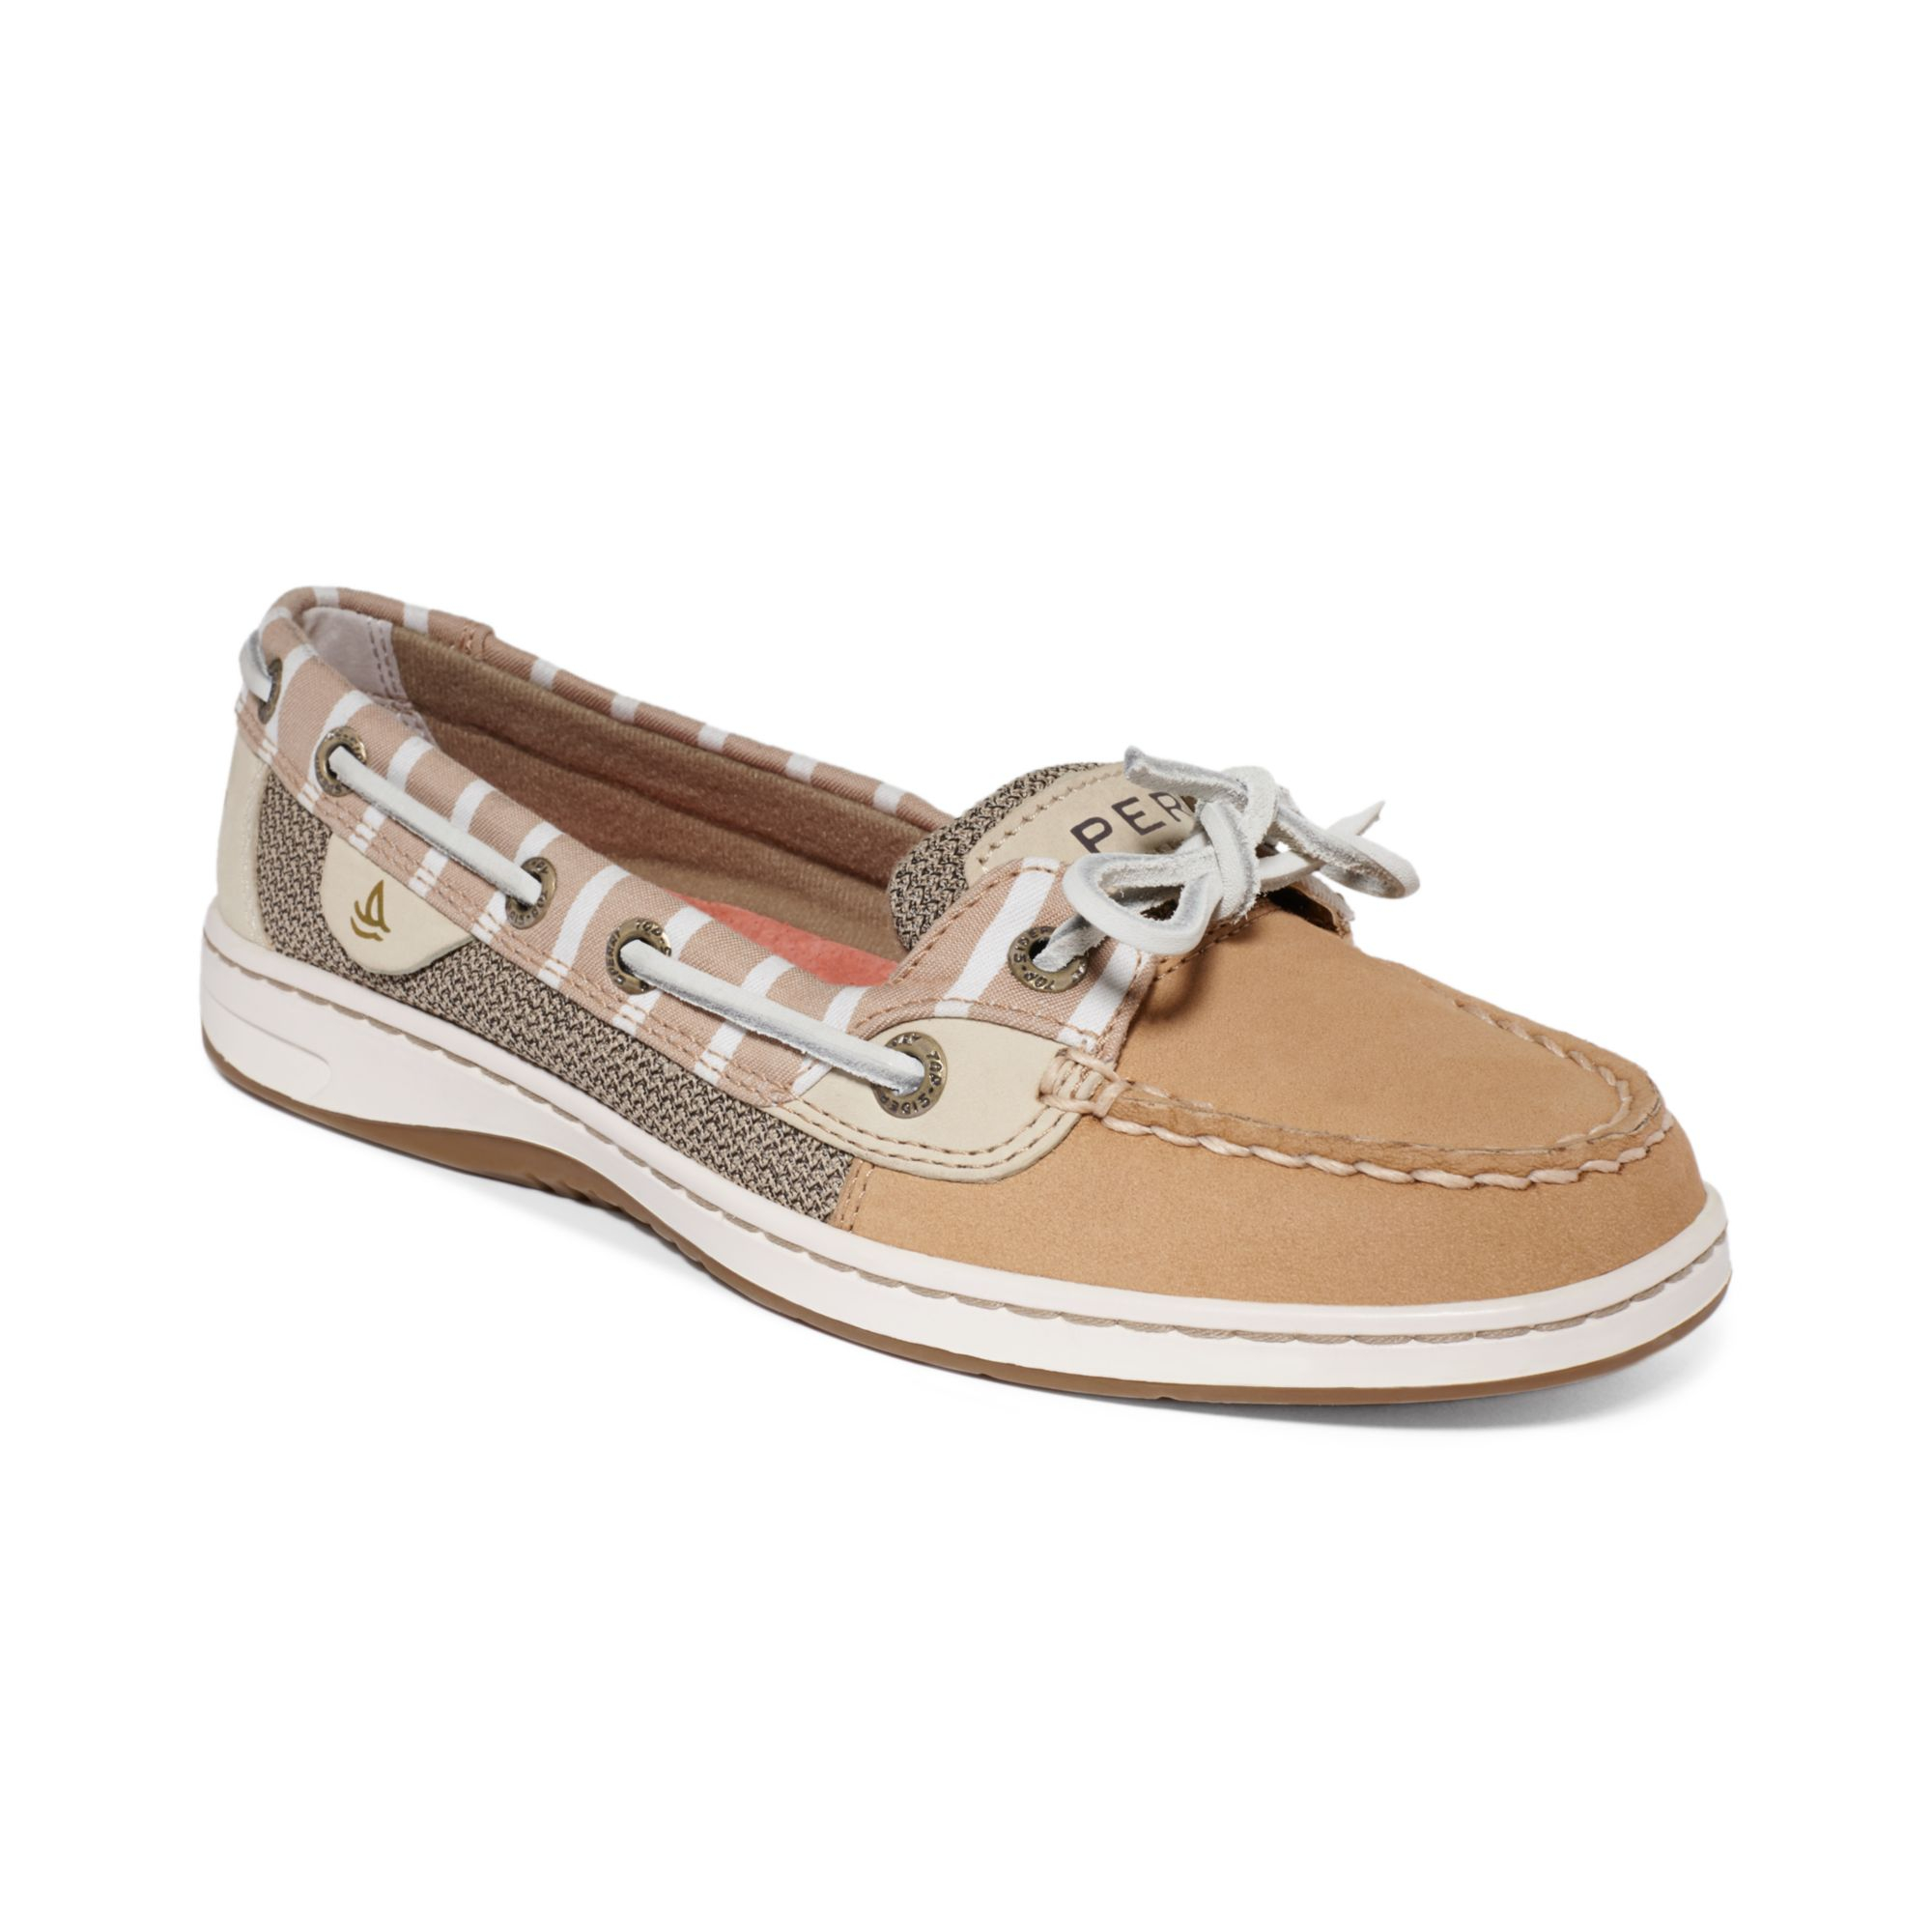 Sperry Womens Shoes Loafers